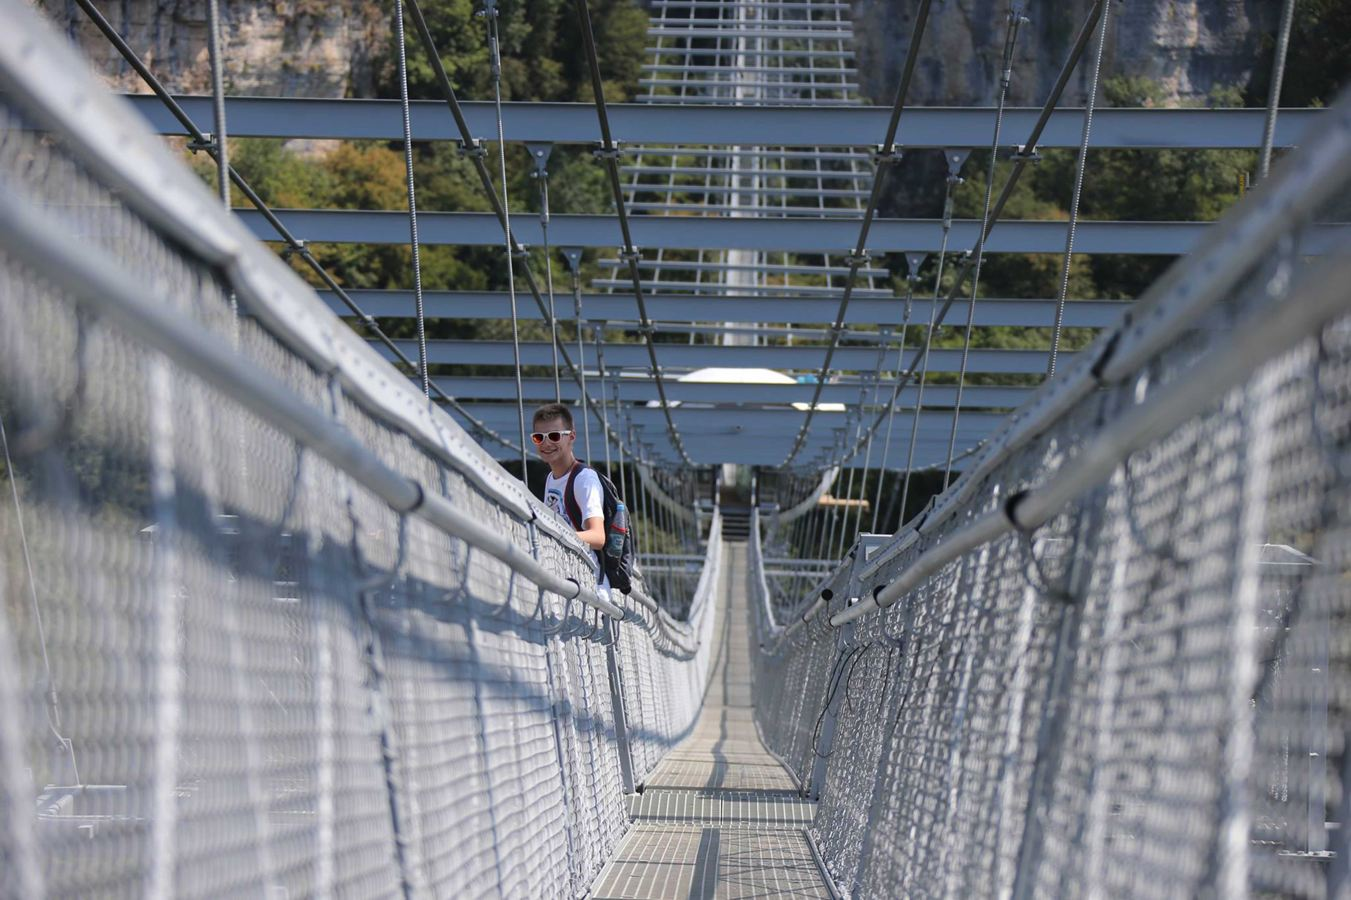 Daunting: The bridge also has a bungee jump facility built into a nearby viewing platform. (CEN)